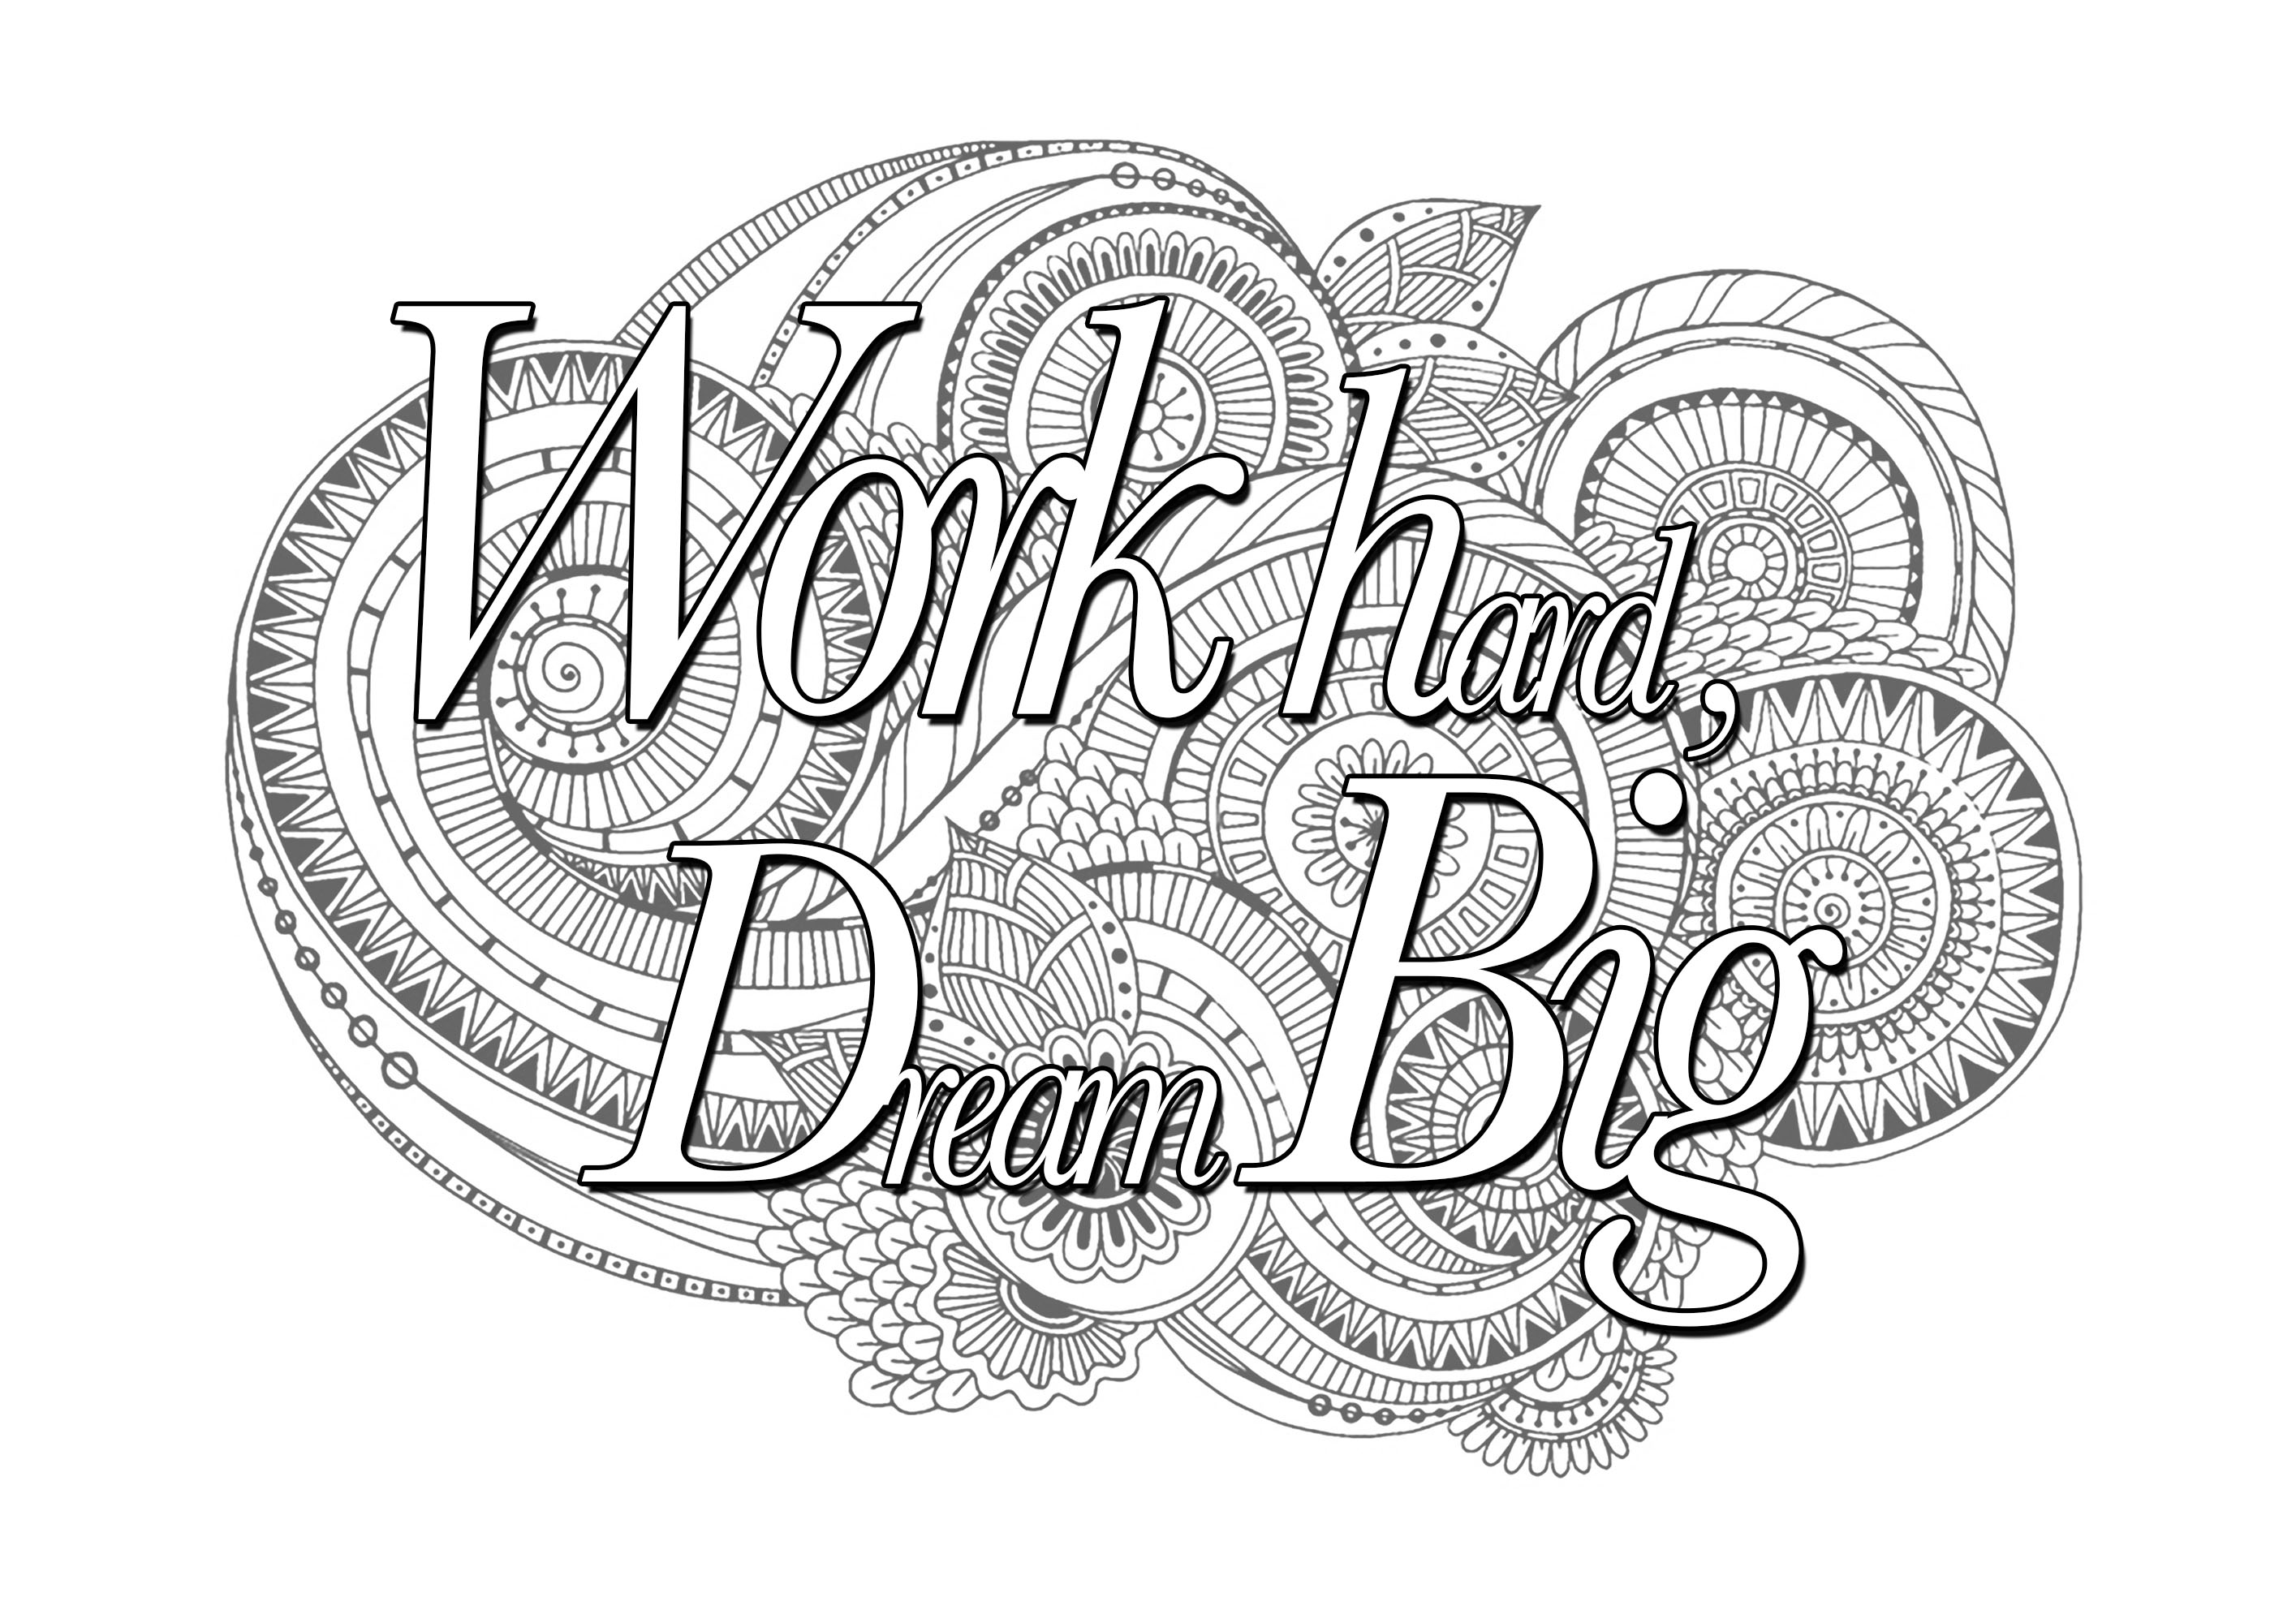 Quote work hard dream big quotes adult coloring pages for Hard coloring pages